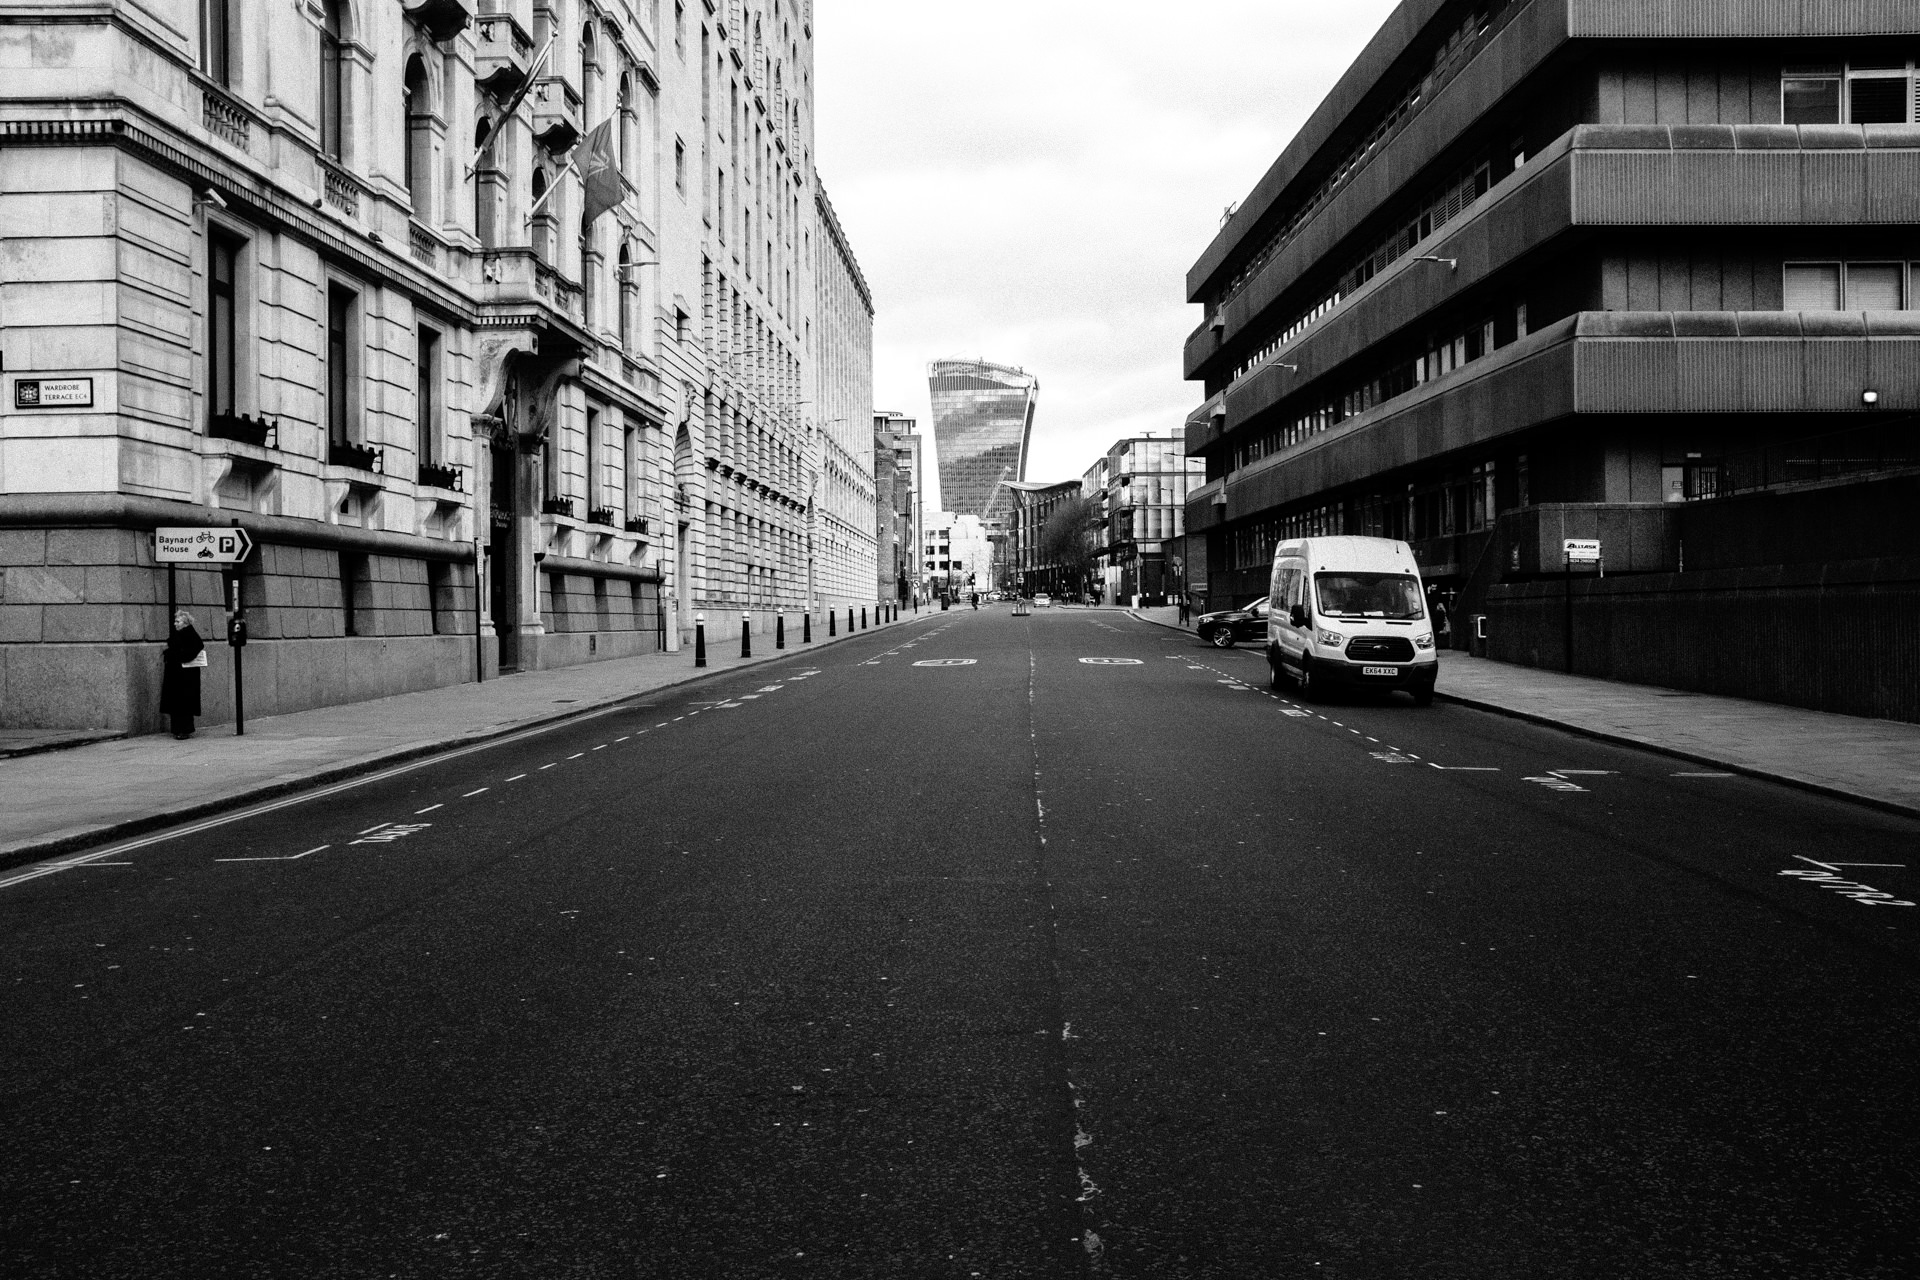 totally empty steet in london during the lockdown 2020